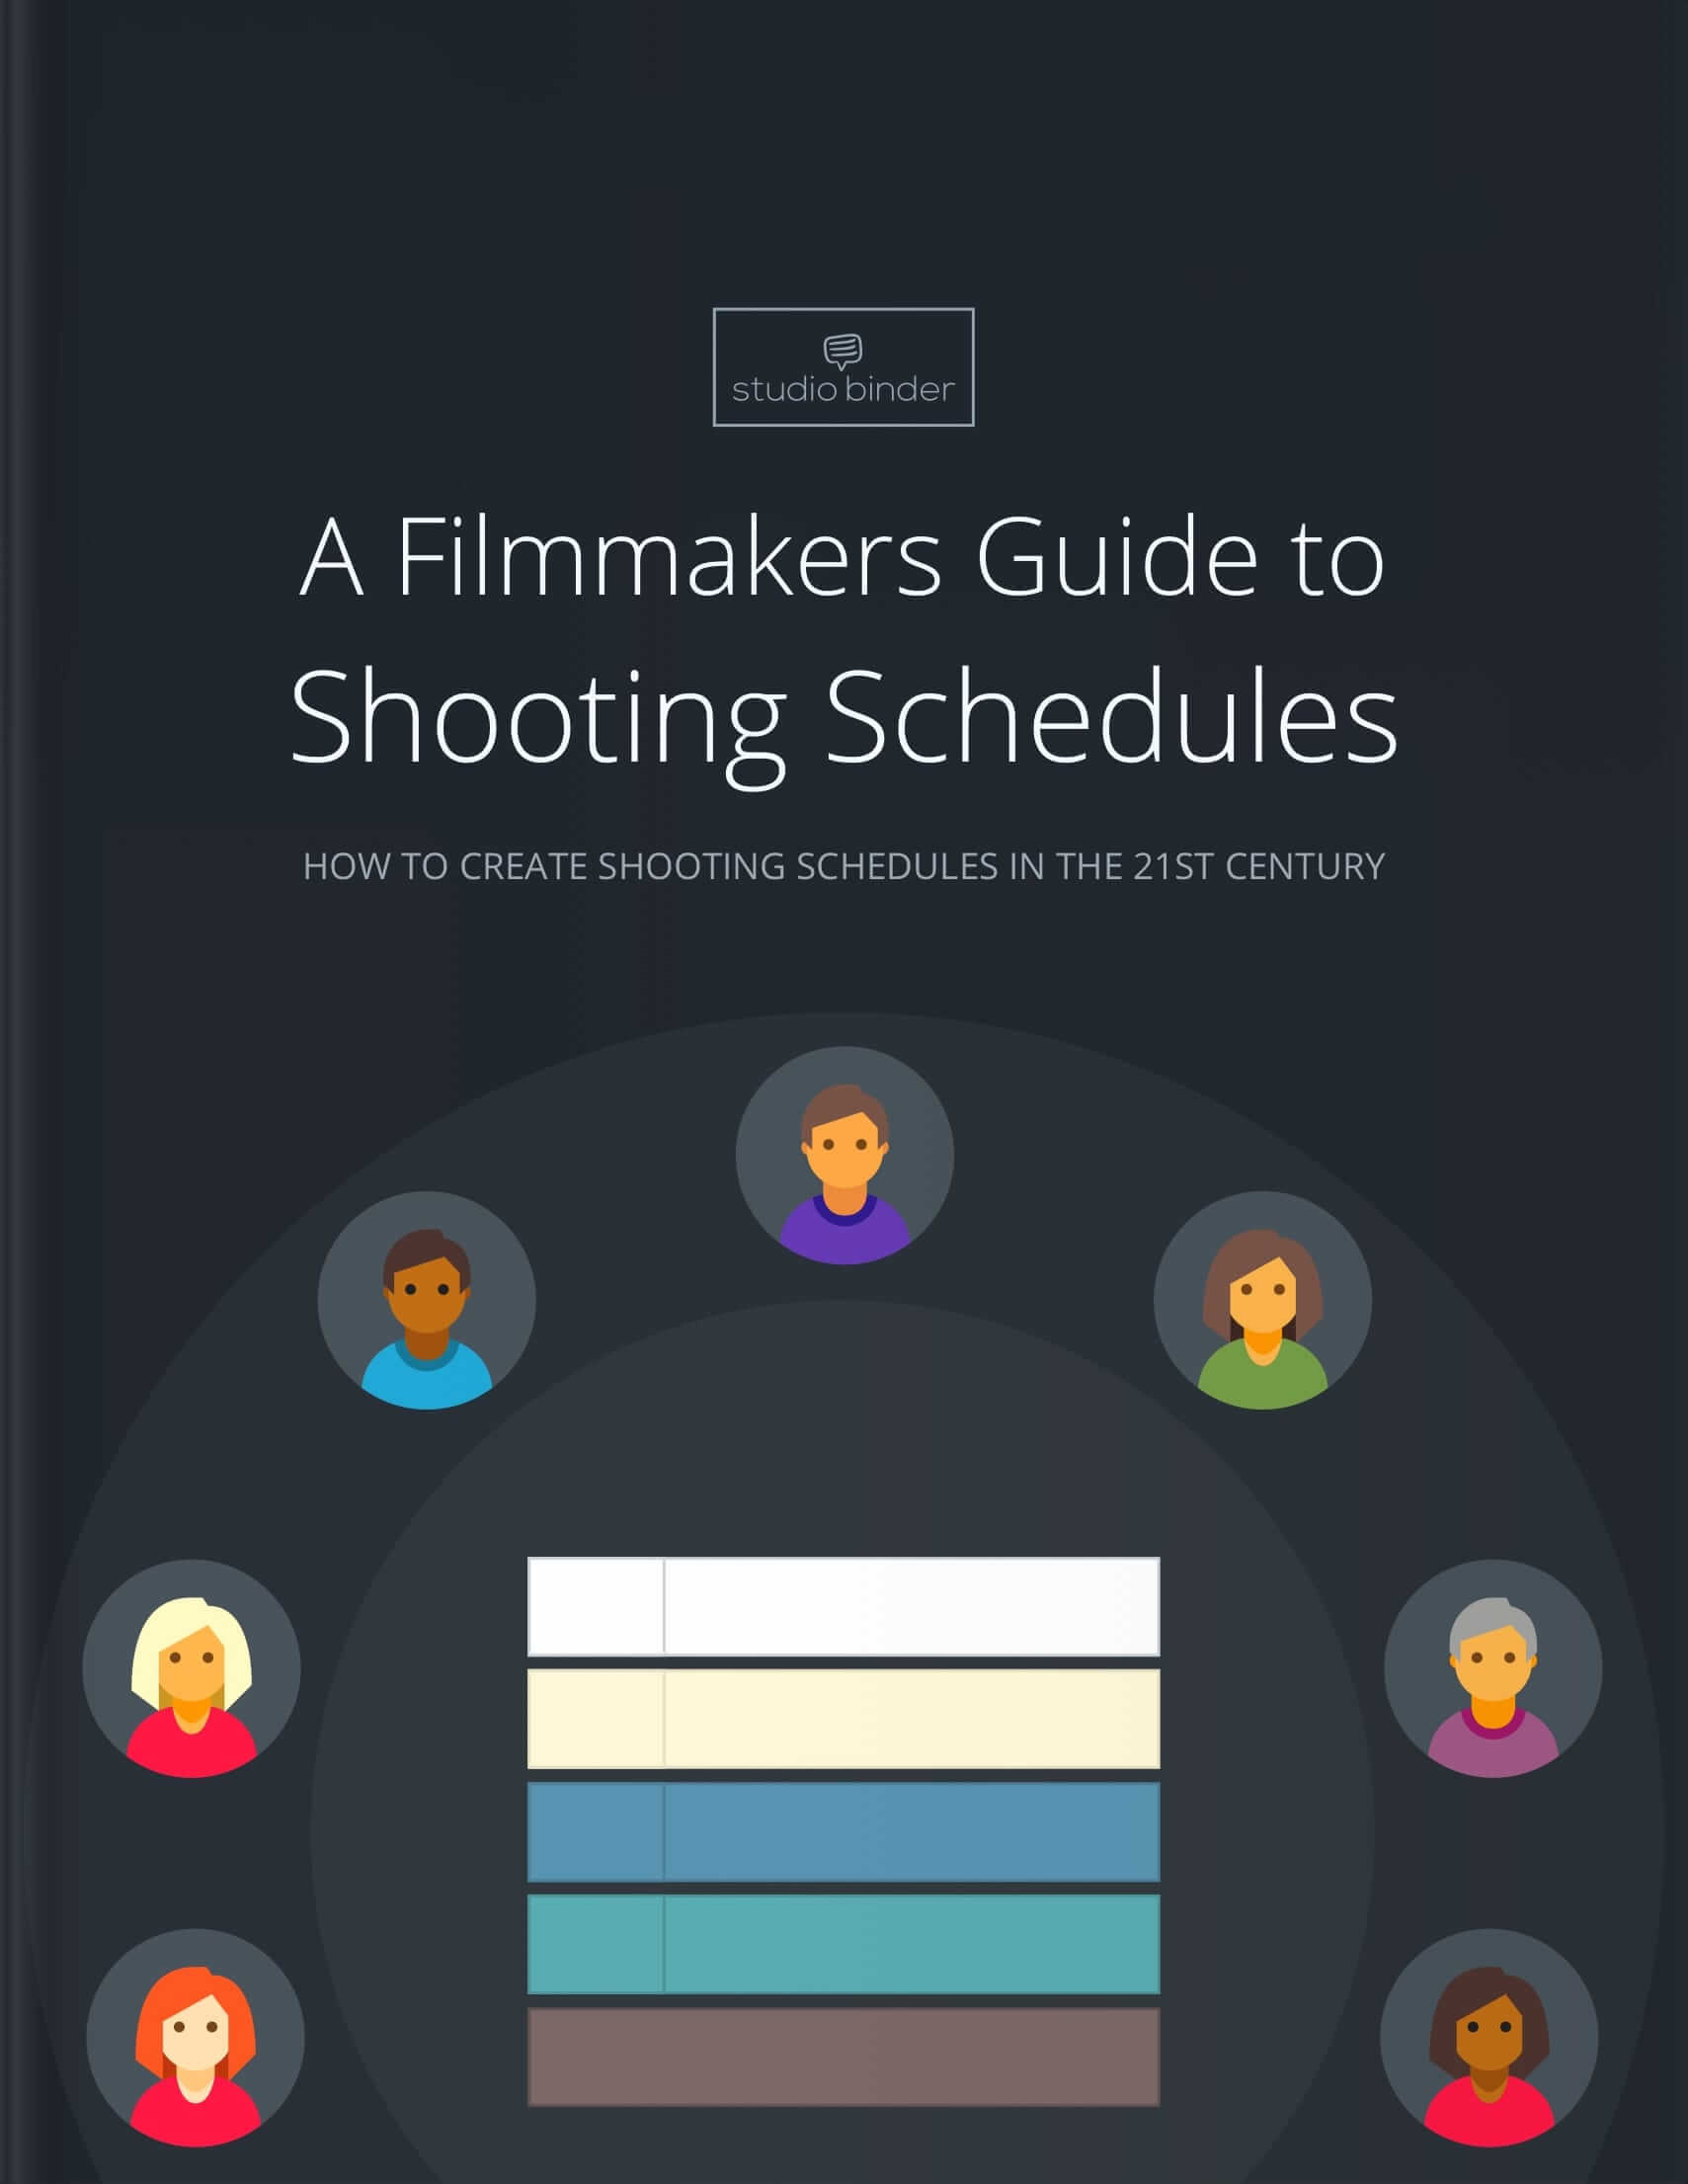 A Filmmaker's Guide to Shooting Schedules (Free E-Book)